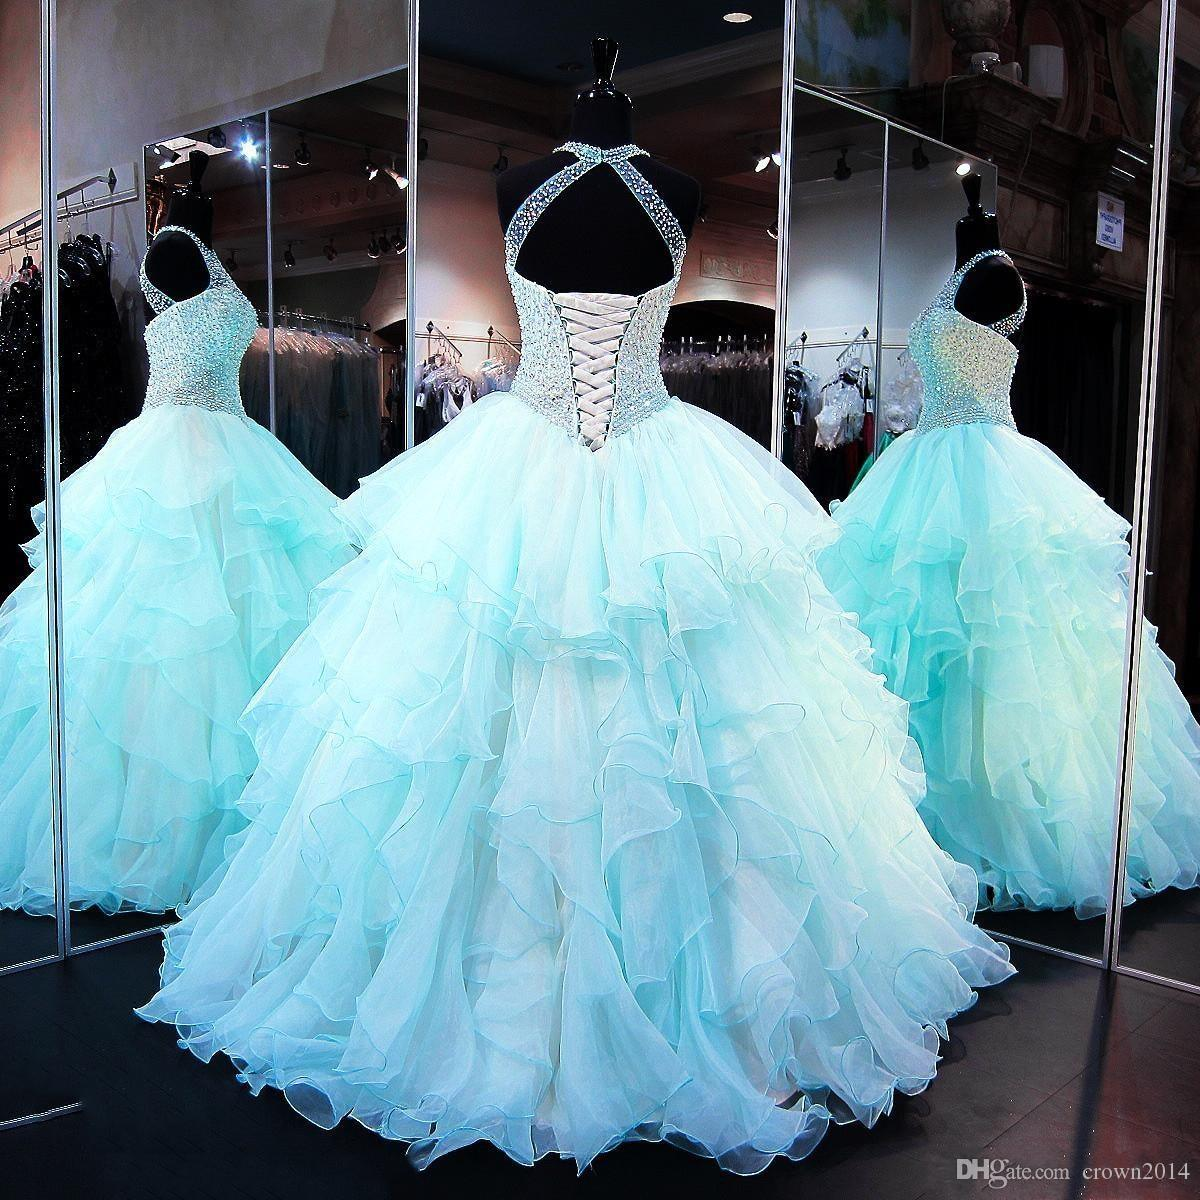 Ruffled Organza Skirt Quinceanera Dresses 2019 with Pearl Beaded Bodice Sheer High Neck Lace up Backless Light Sky Blue Prom Puffy Ball Gown